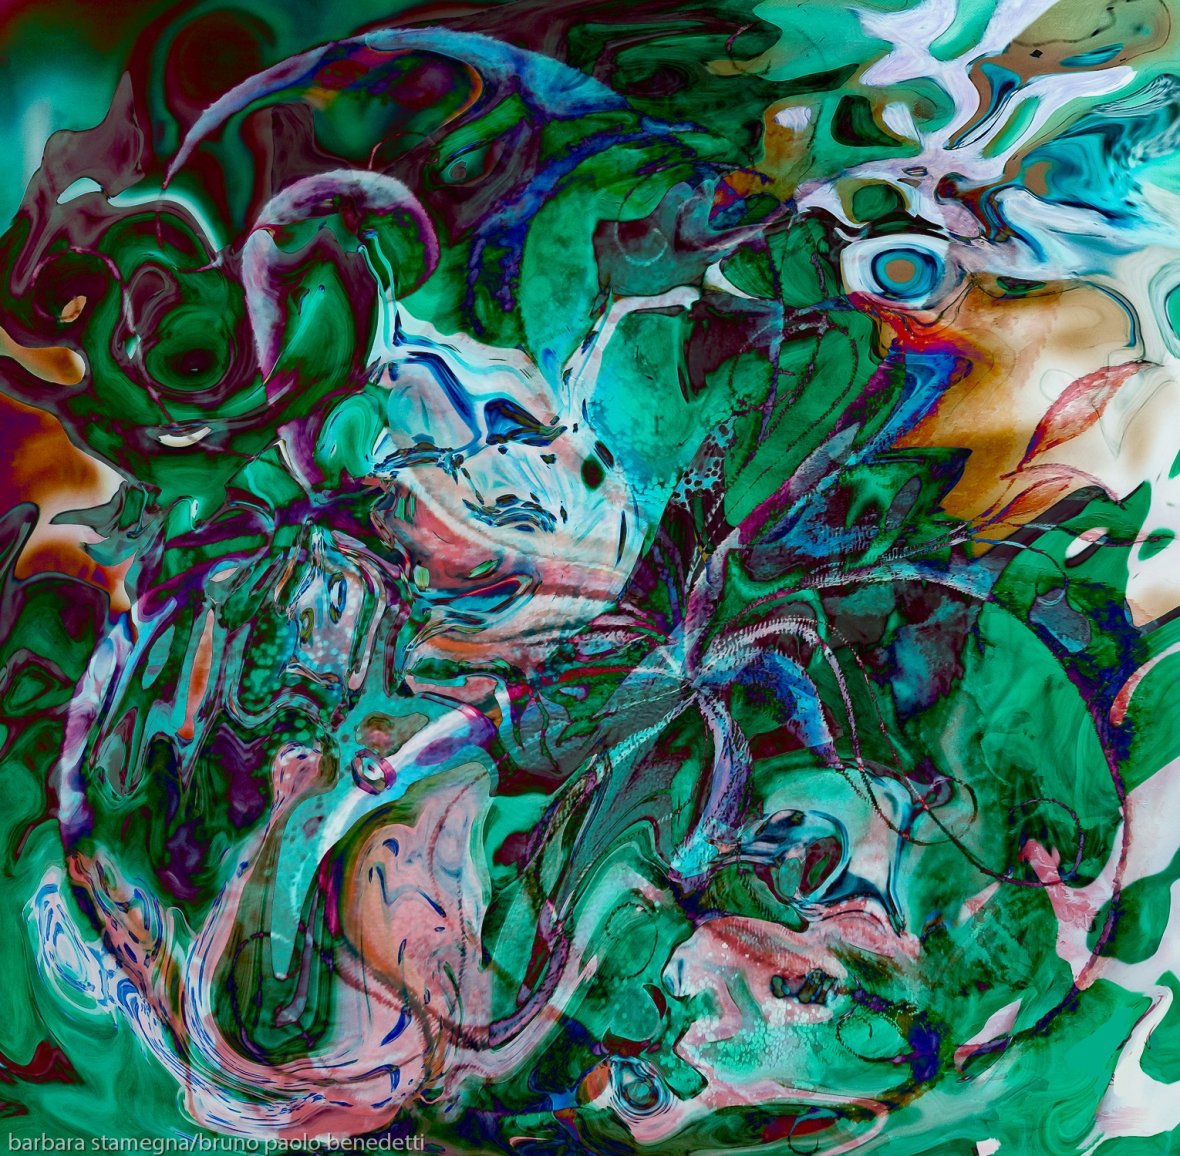 green labyrinth abstractions photography painting art in bright mottled colors photography painting art